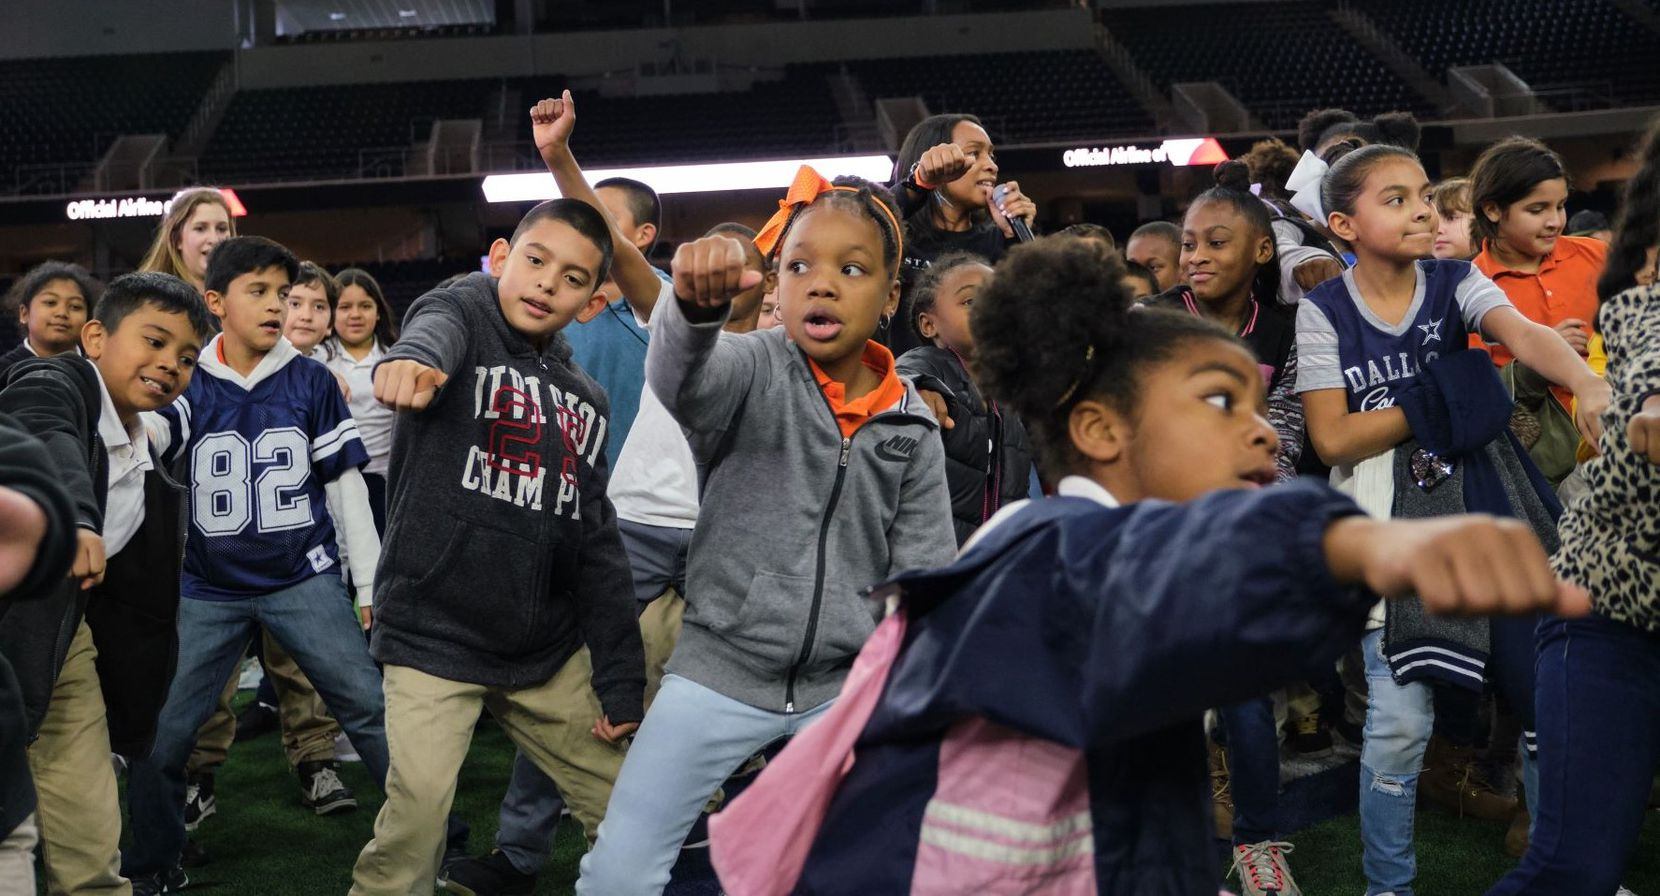 STATE Bags a Brooklyn-based backpack and accessories company, hosted one of its one-of-a-kind bag drops with other partners, donating 500 backpacks to students who attend Uplift Triumph Preparatory and Uplift Meridian Preparatory. The event was at The Star in Frisco. Photo from STATE Bags.